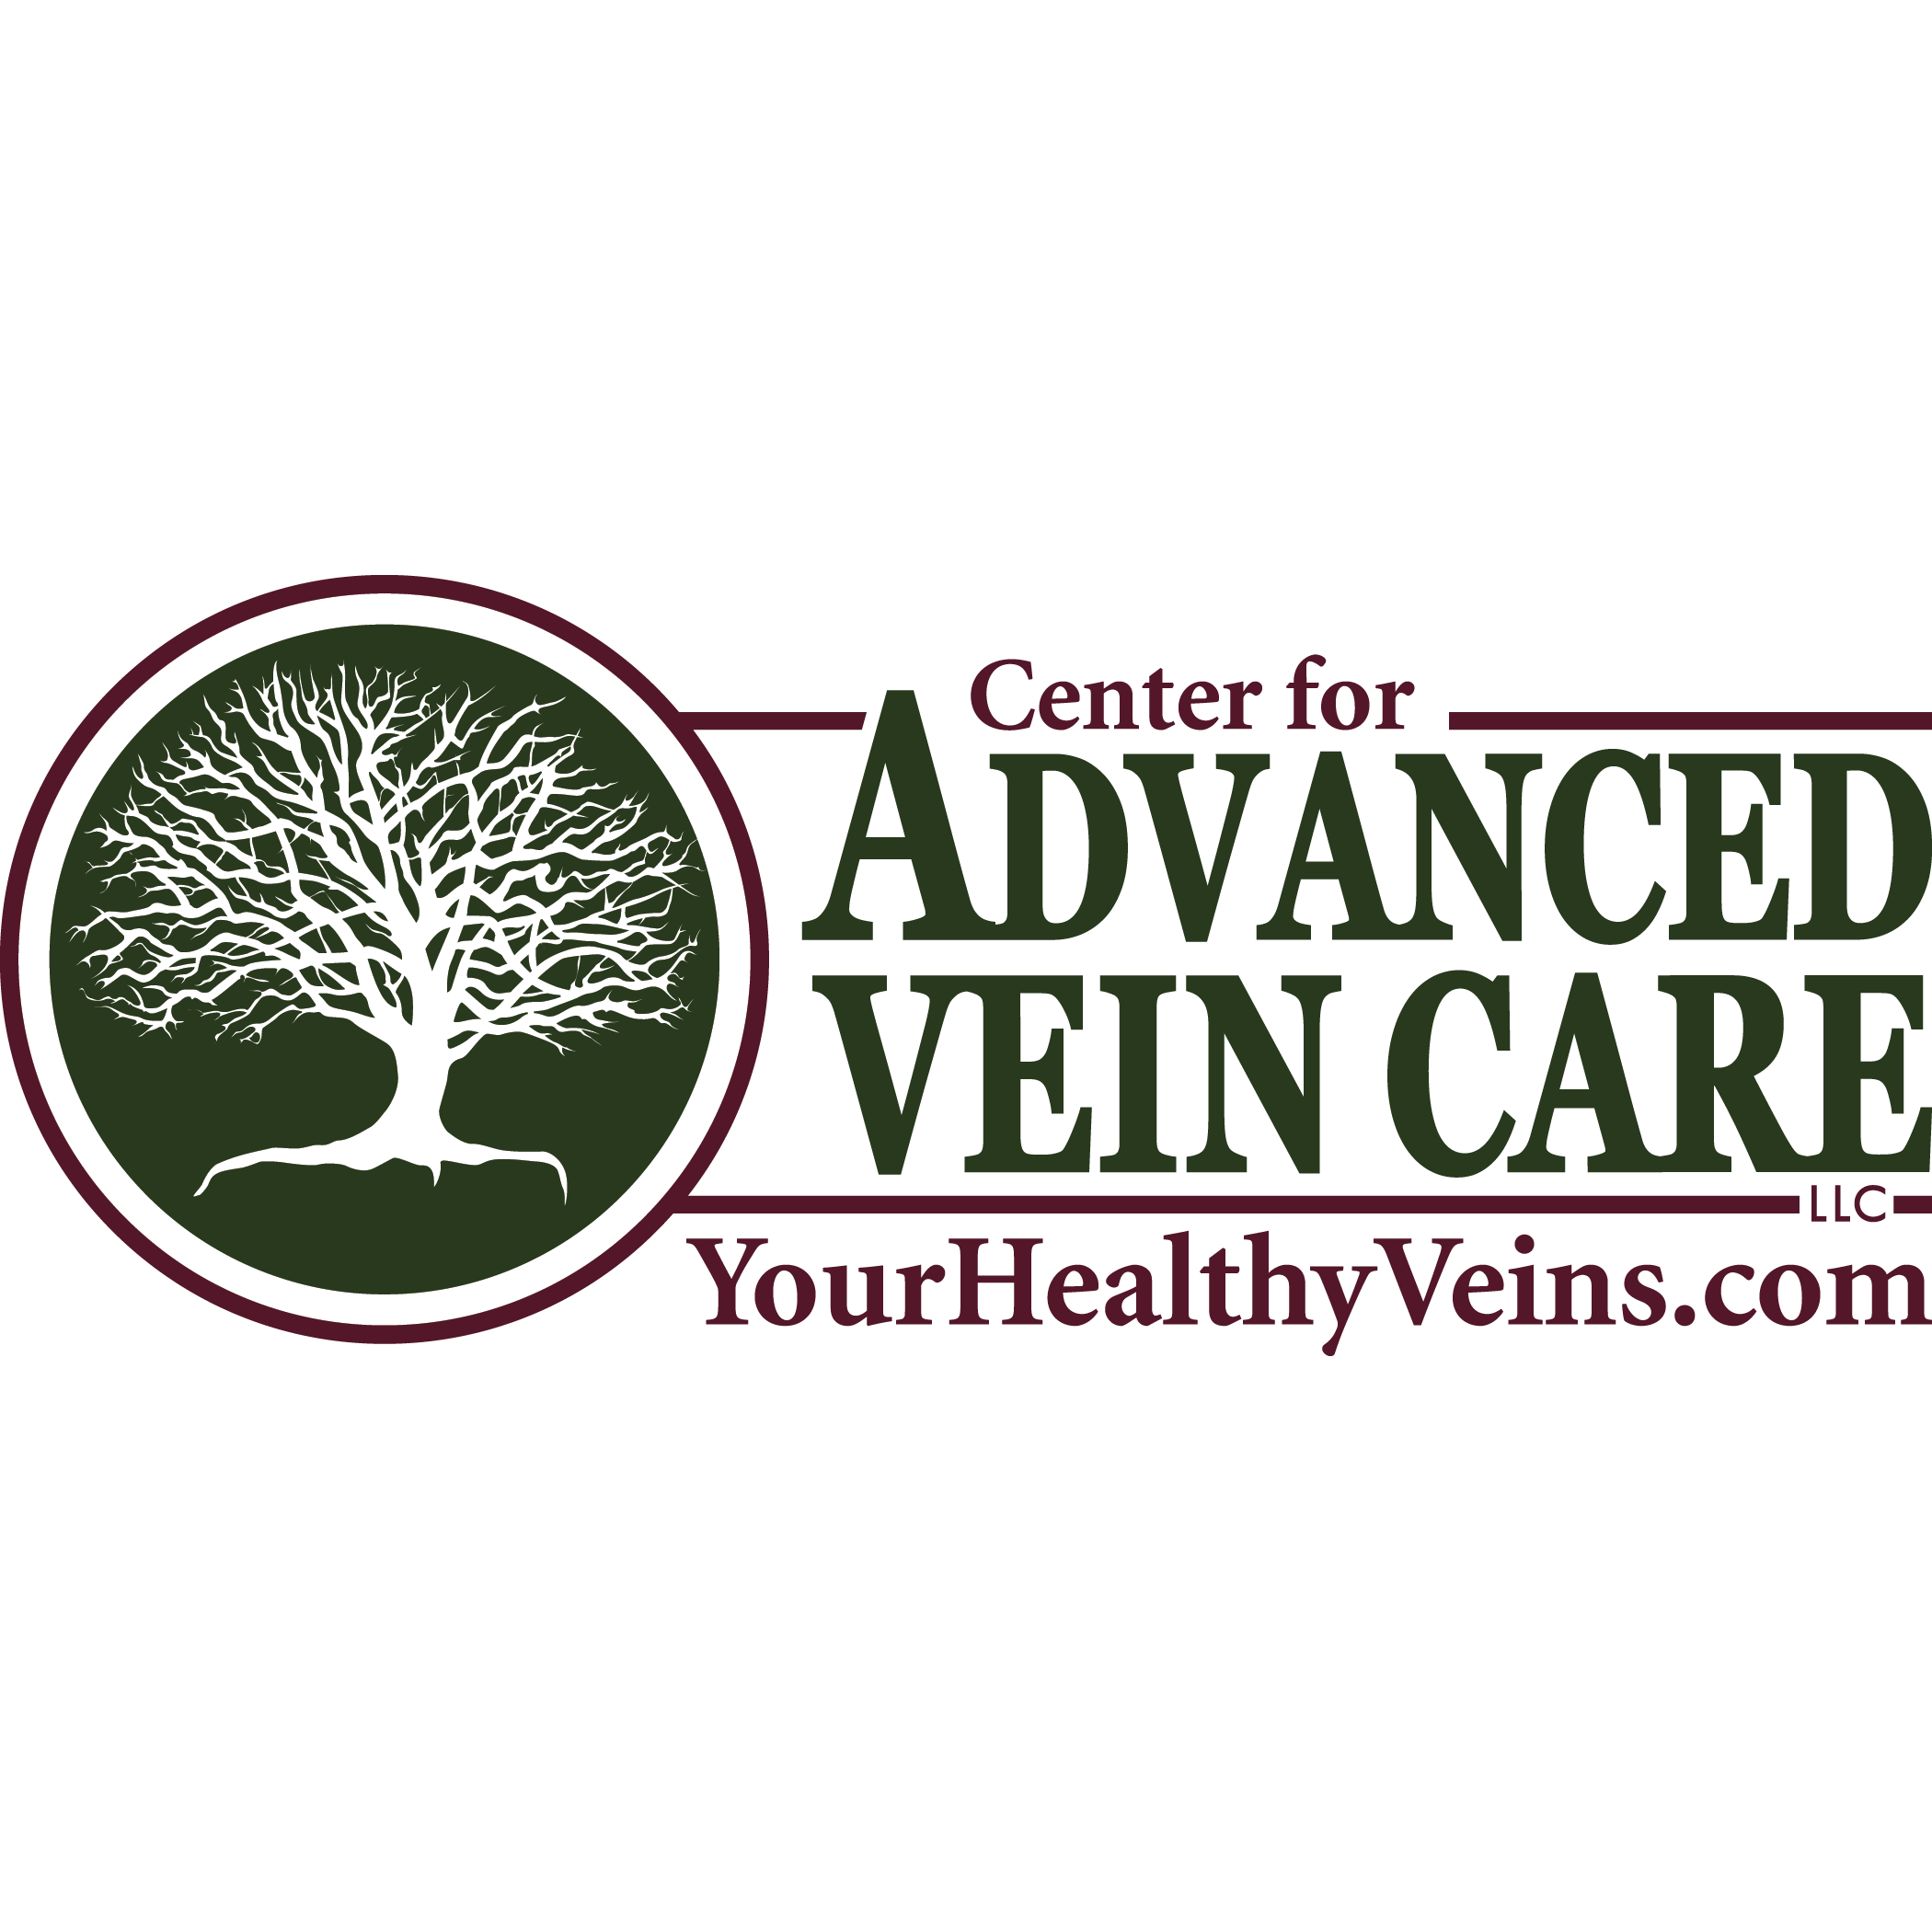 Center for Advanced Vein Care, LLC